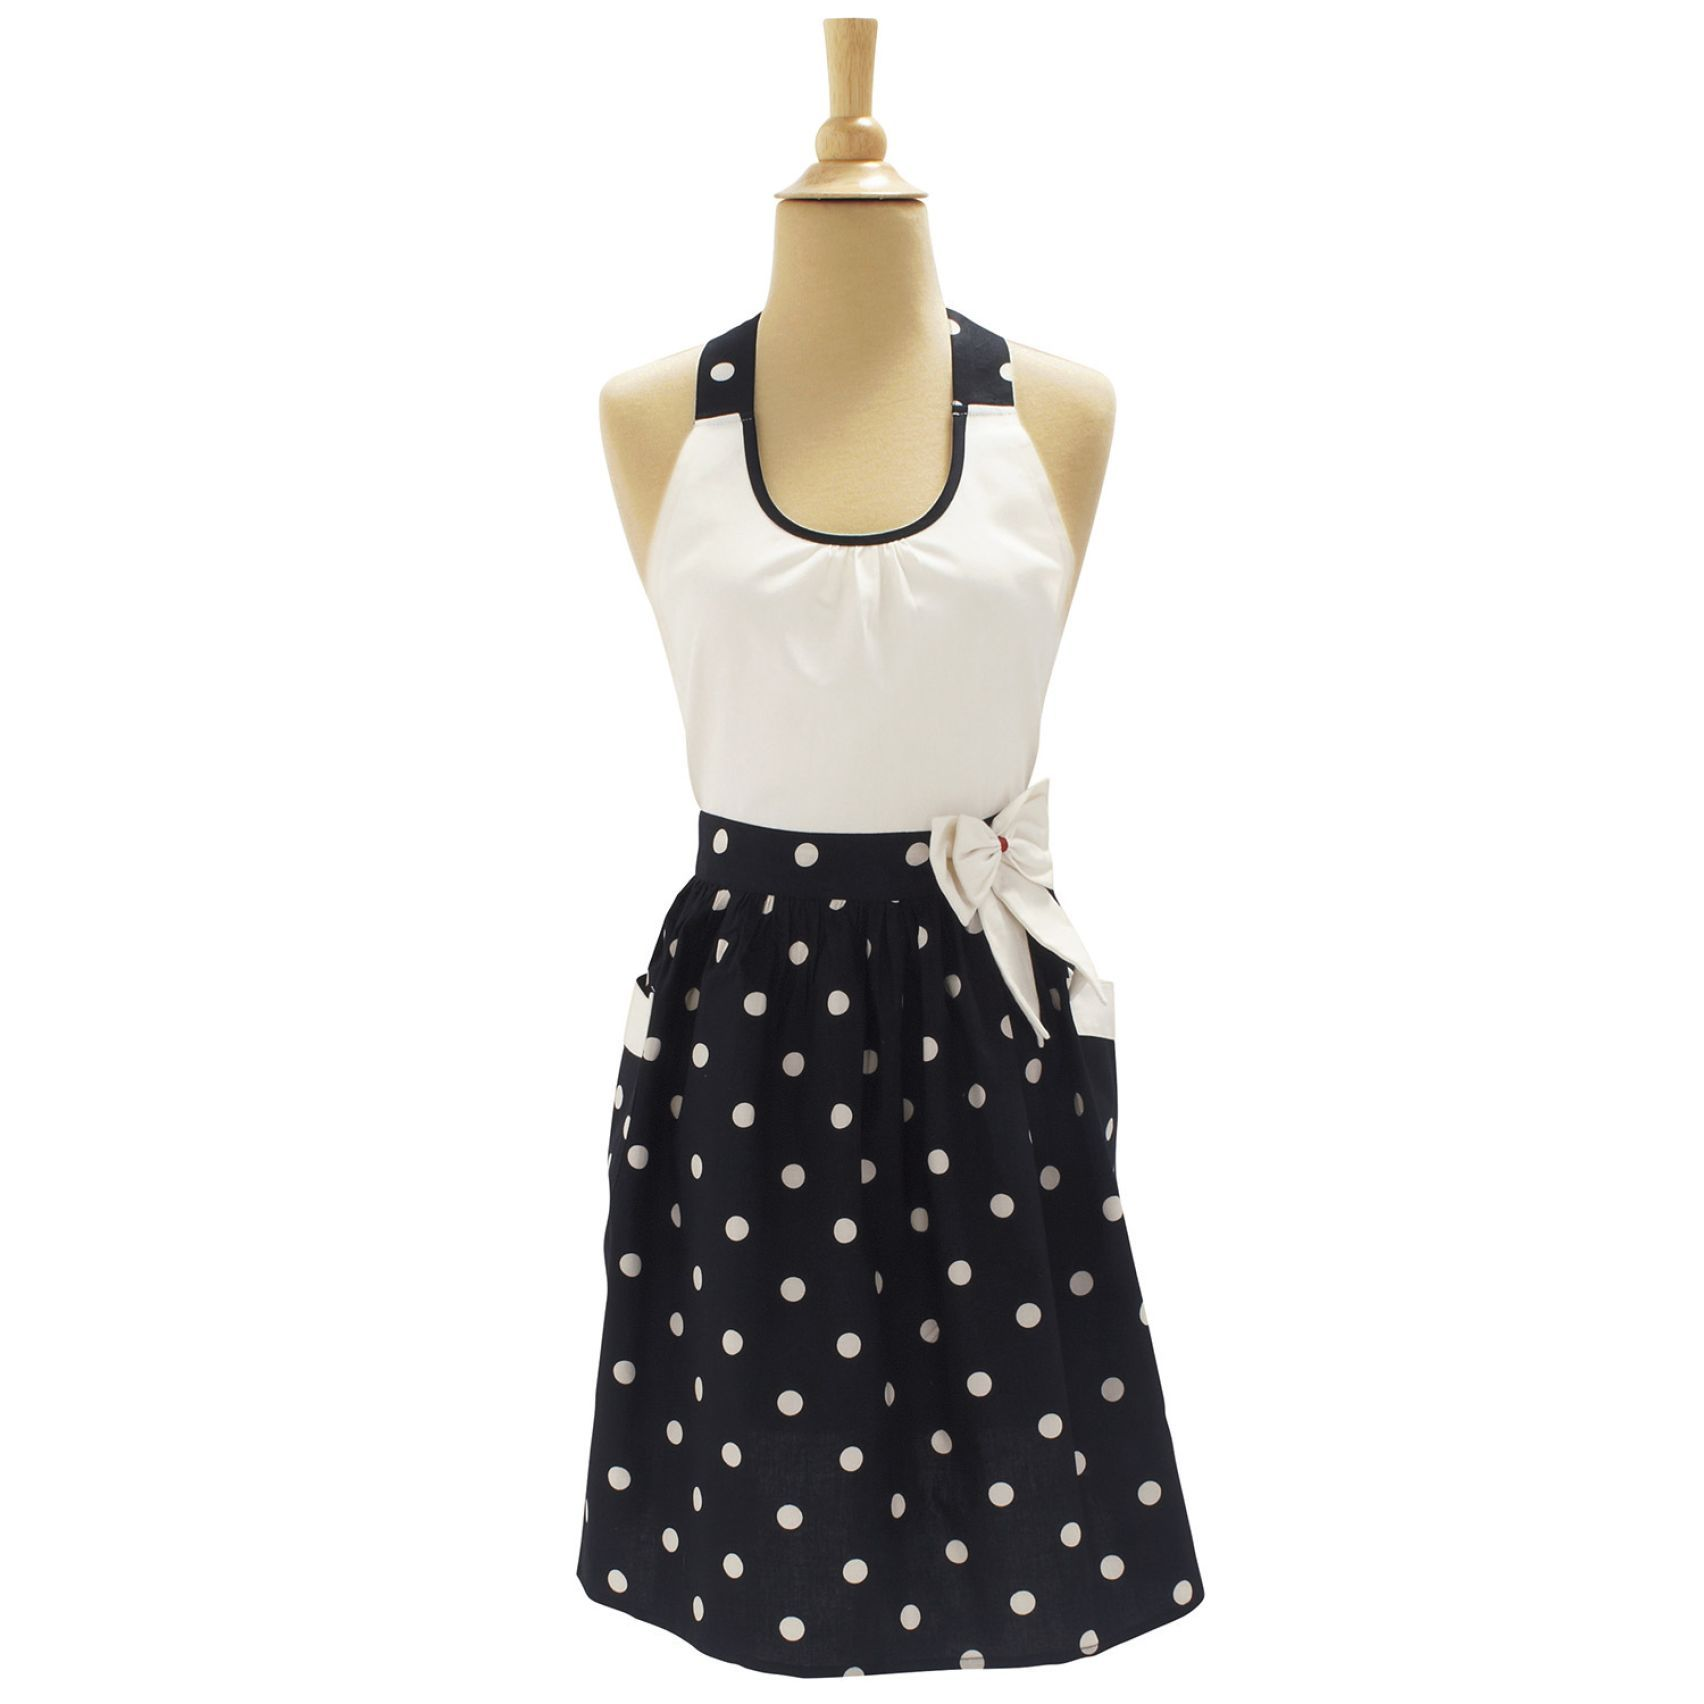 Dotty Bow Vintage Inspired Aprons Sur La Table Practical